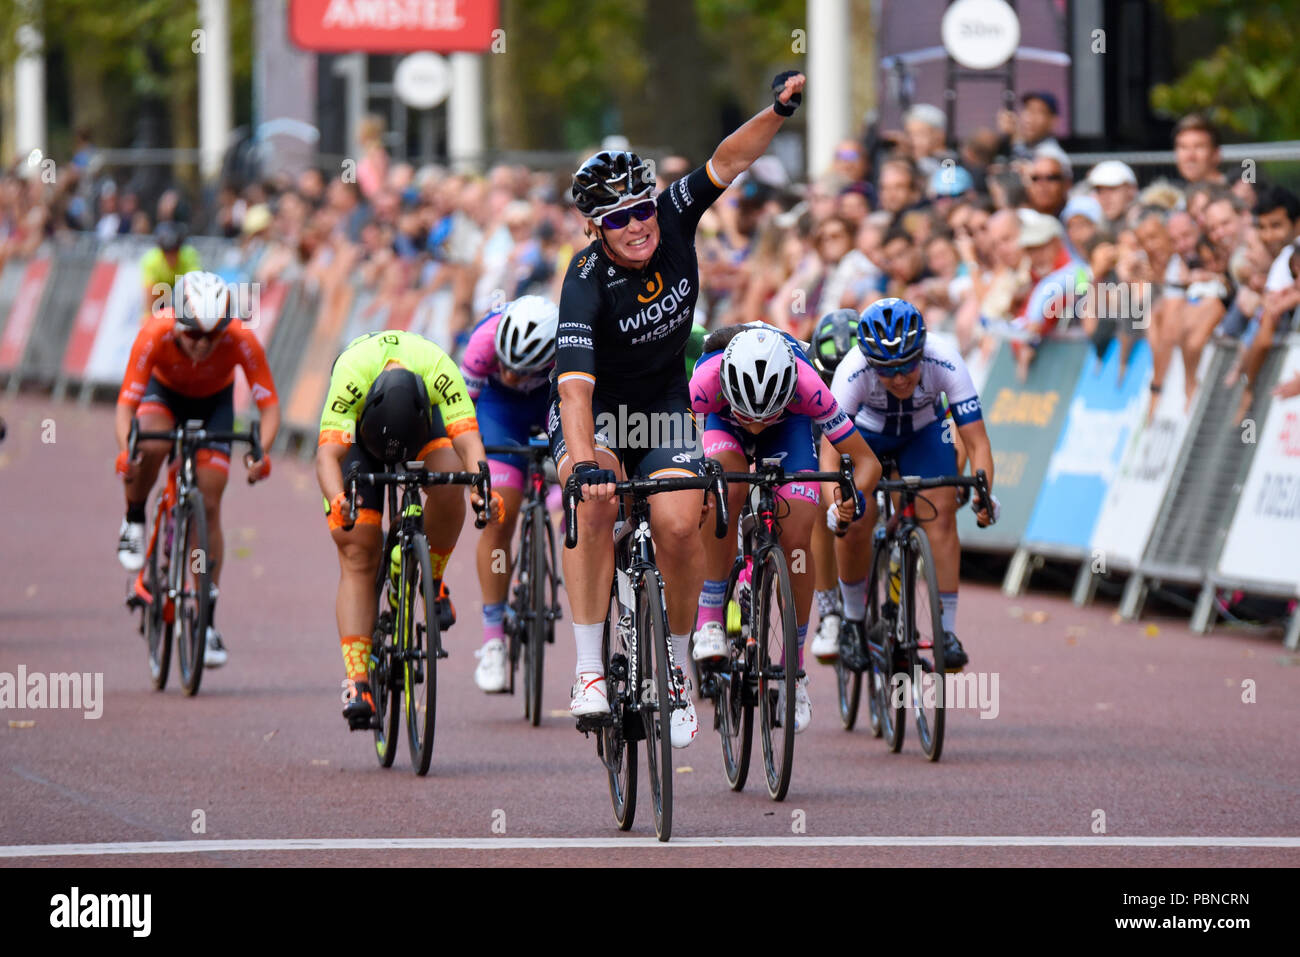 kirsten-wild-of-wiggle-high5-crossing-the-line-and-celebrating-winning-after-racing-in-the-prudential-ridelondon-classique-womens-cycle-race-PBNCRN.jpg